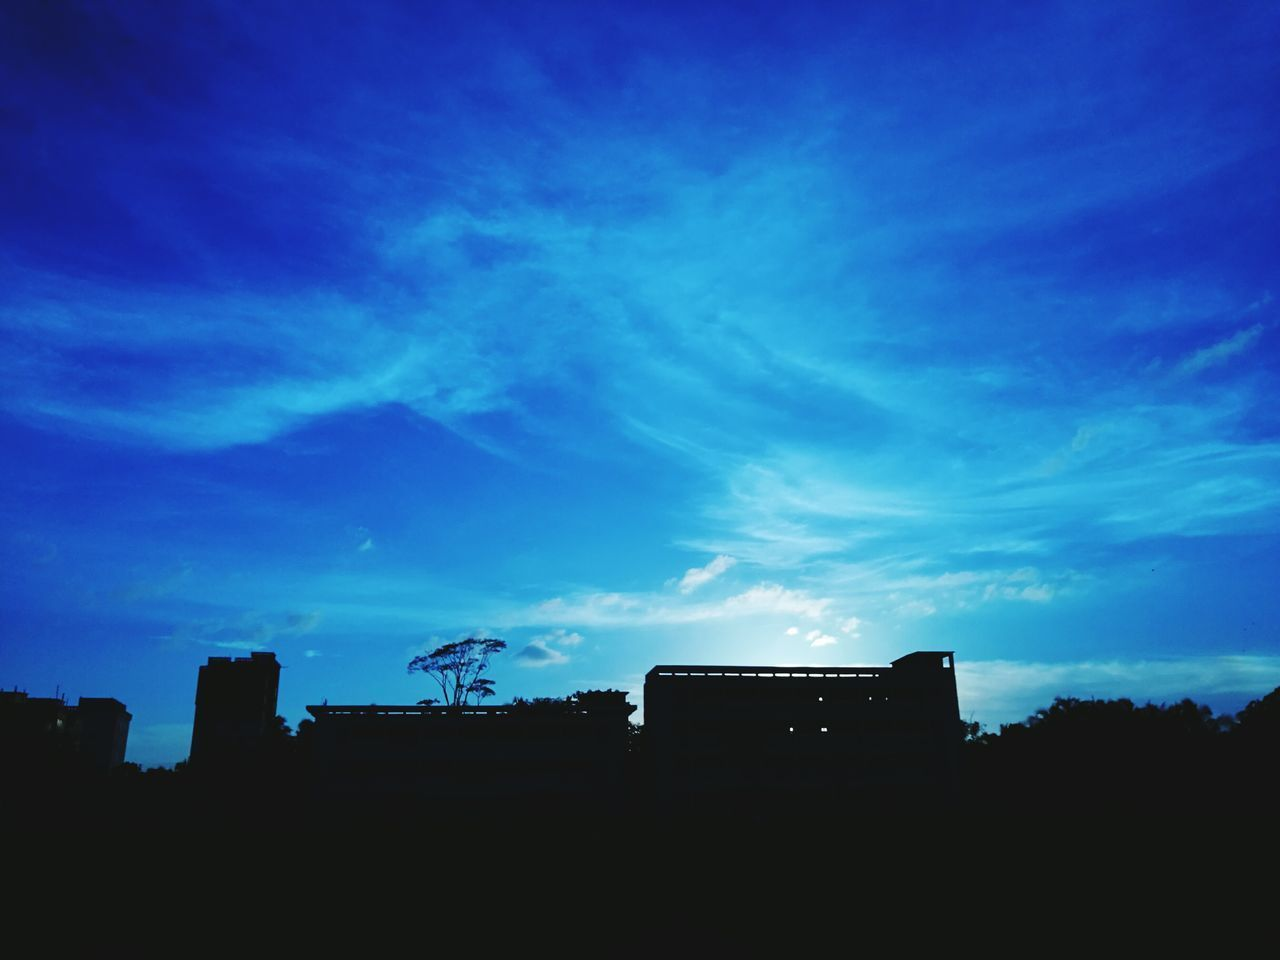 silhouette, architecture, built structure, low angle view, sky, building exterior, blue, outdoors, no people, sunset, nature, day